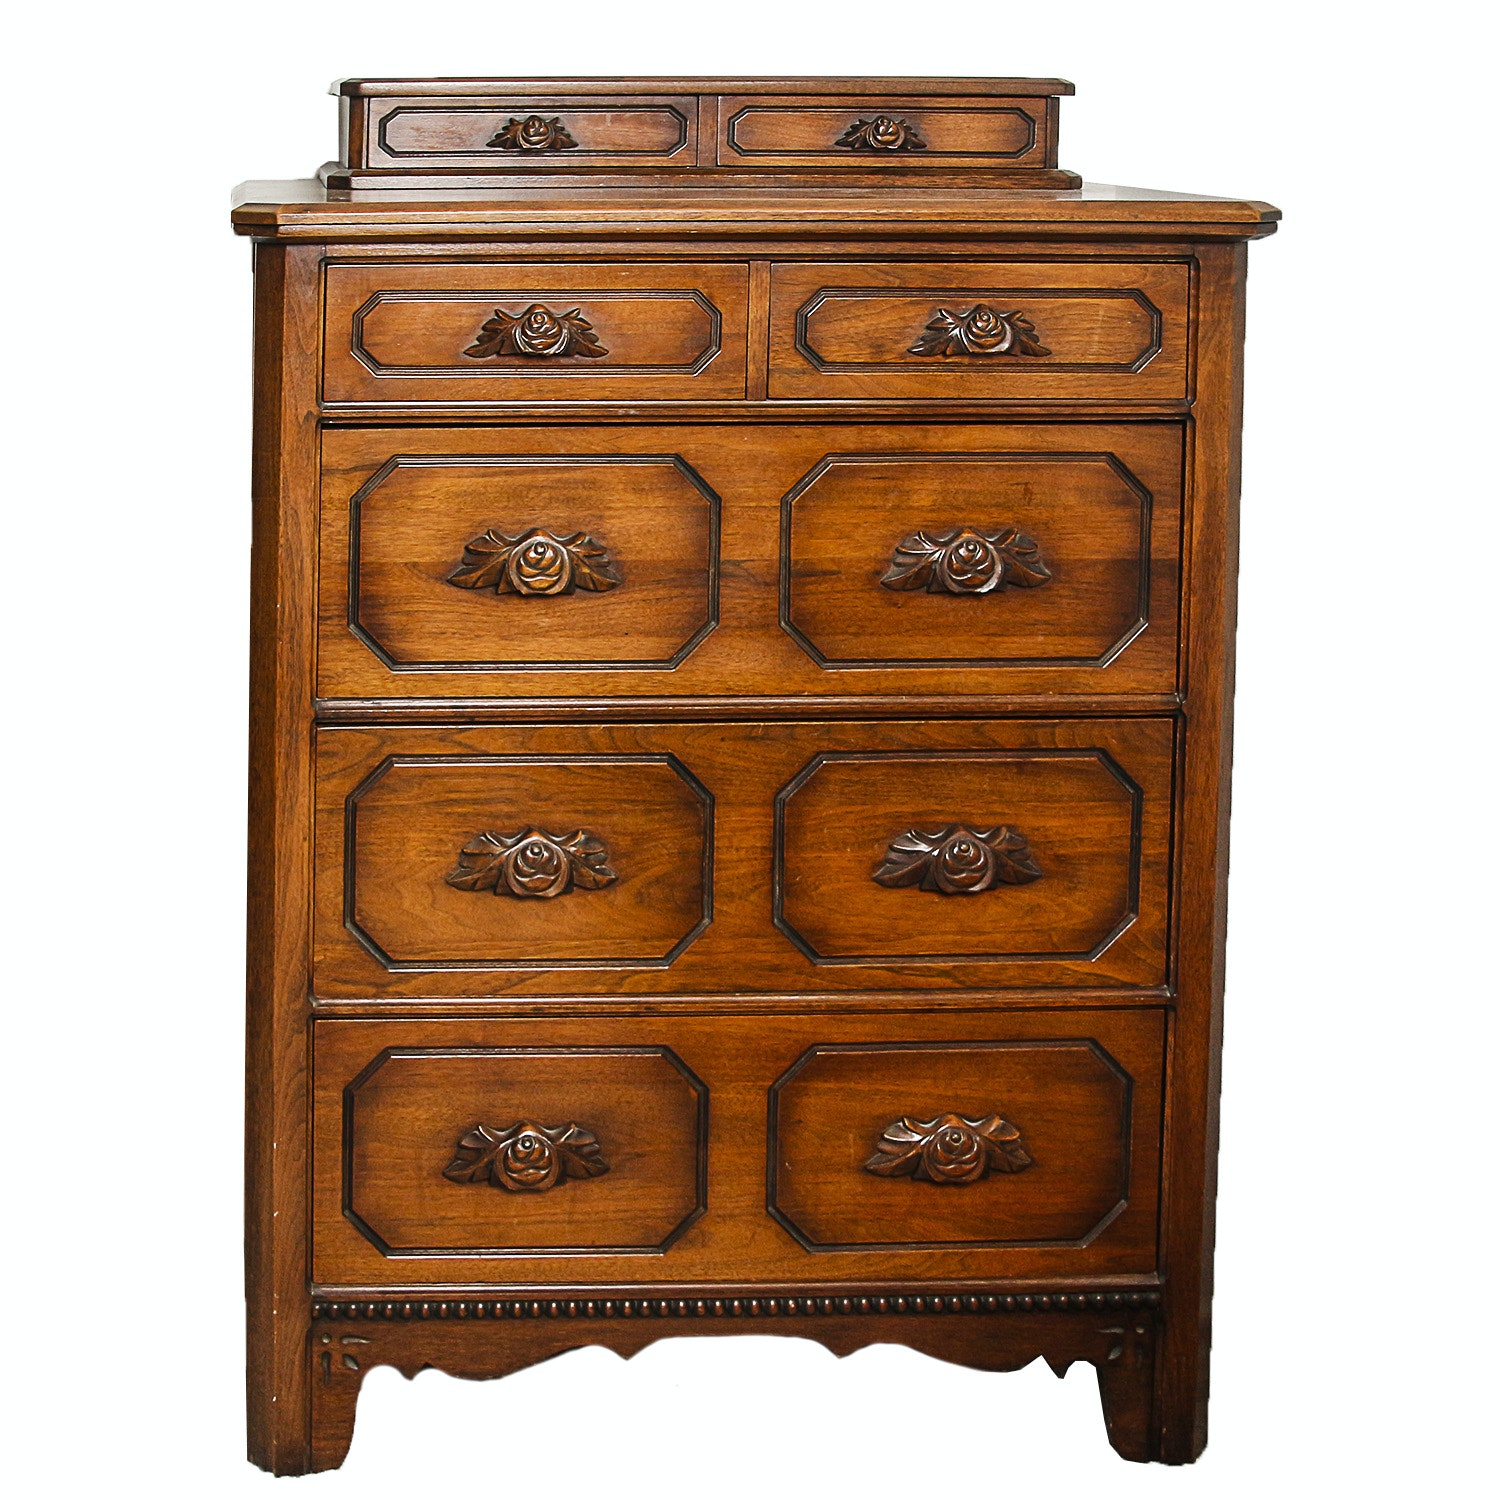 Vintage Victorian Style Chest of Drawers